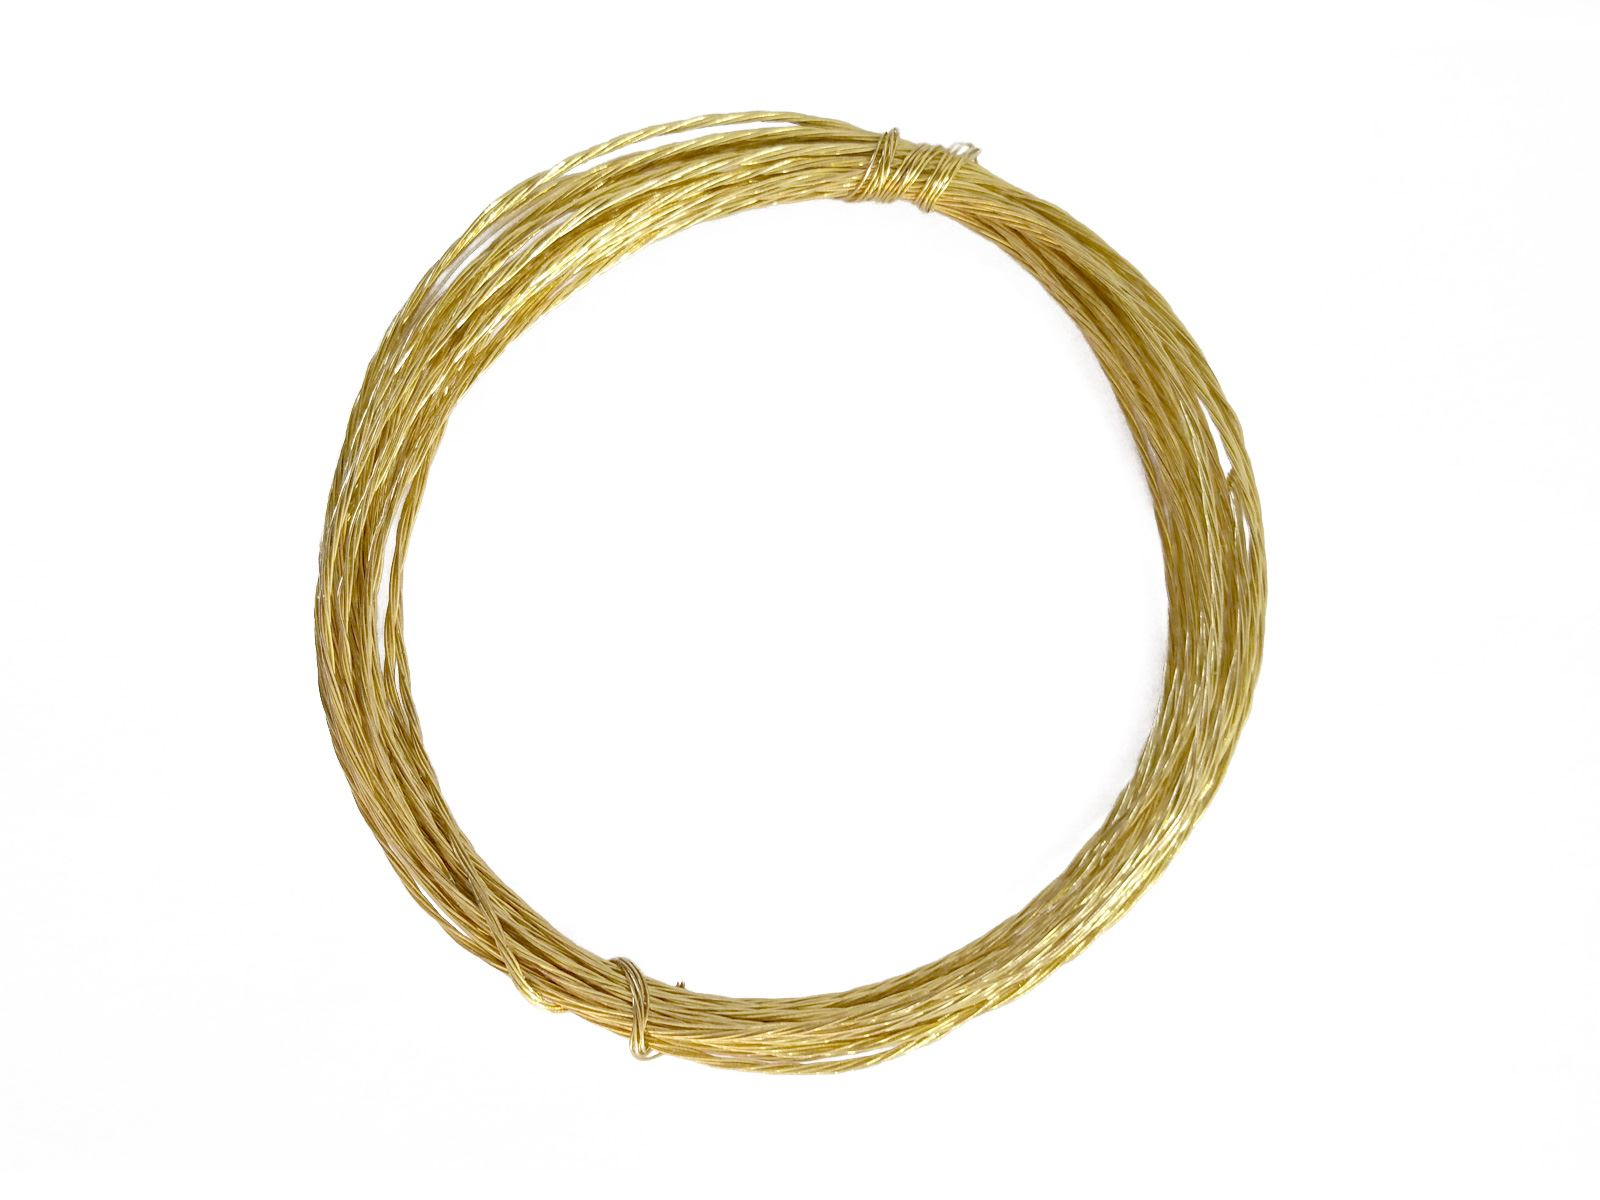 Gold brass picture wire heavy duty long cable cord mirror for Long hanging mirror